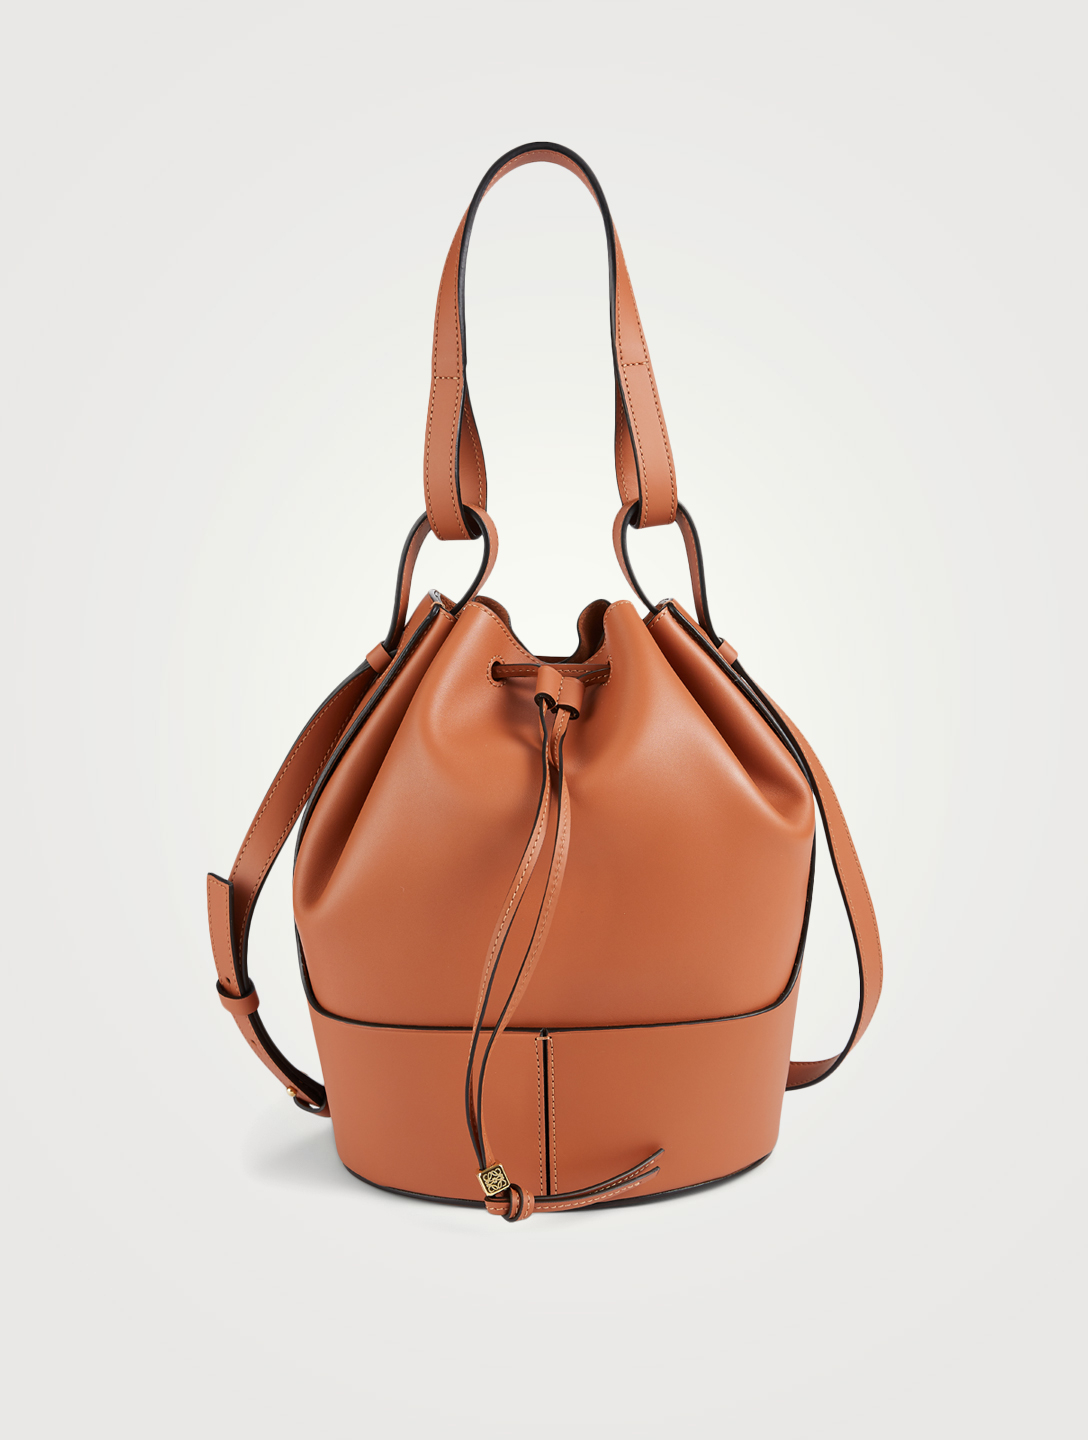 LOEWE Medium Balloon Leather Bag Women's Brown